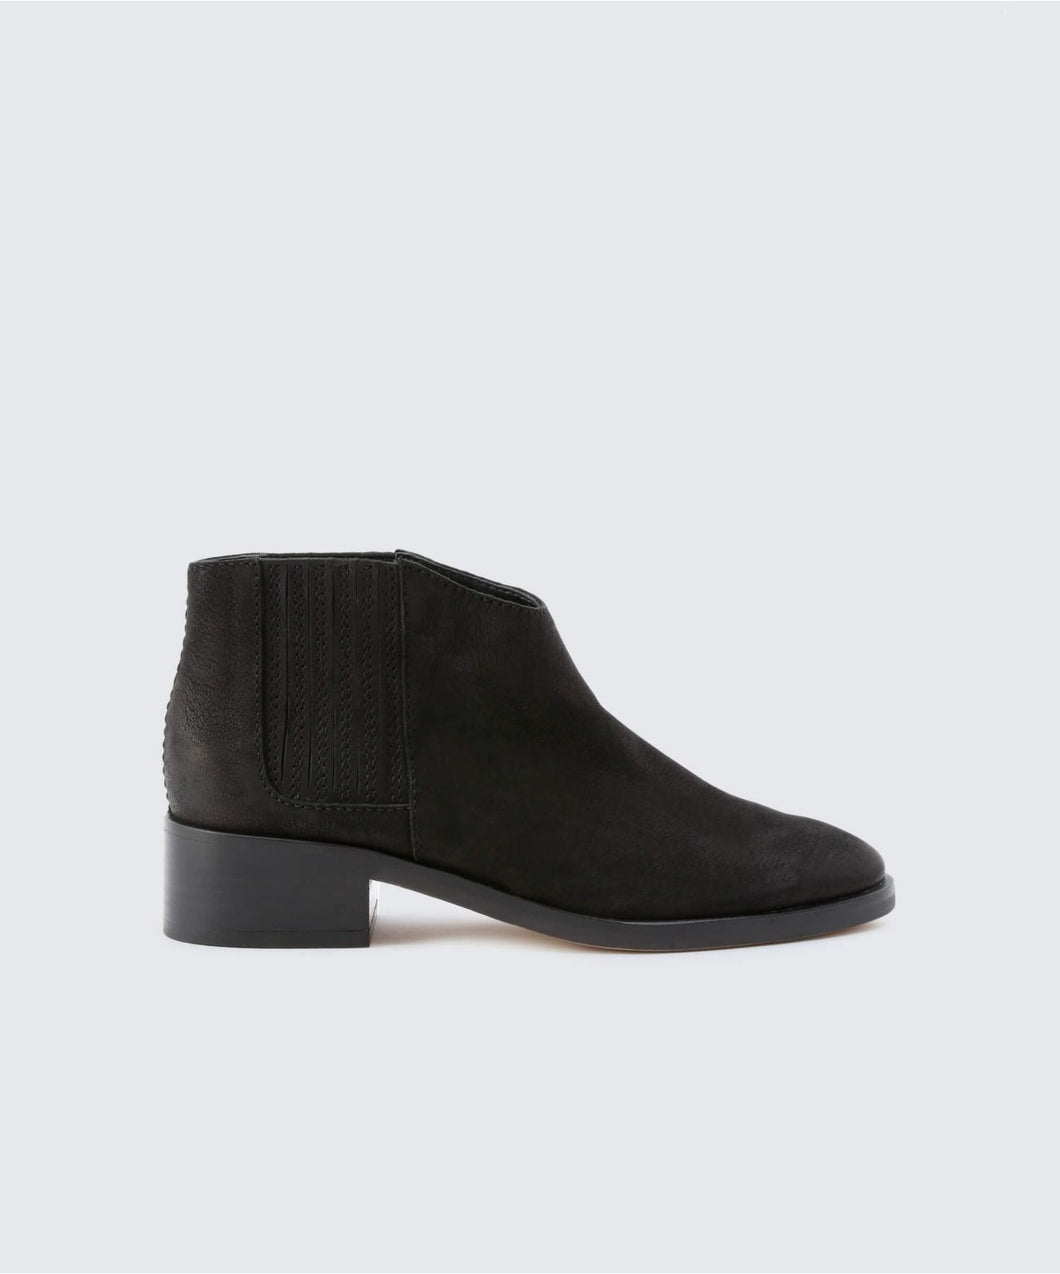 TOWNE BOOTIES IN ONYX -   Dolce Vita